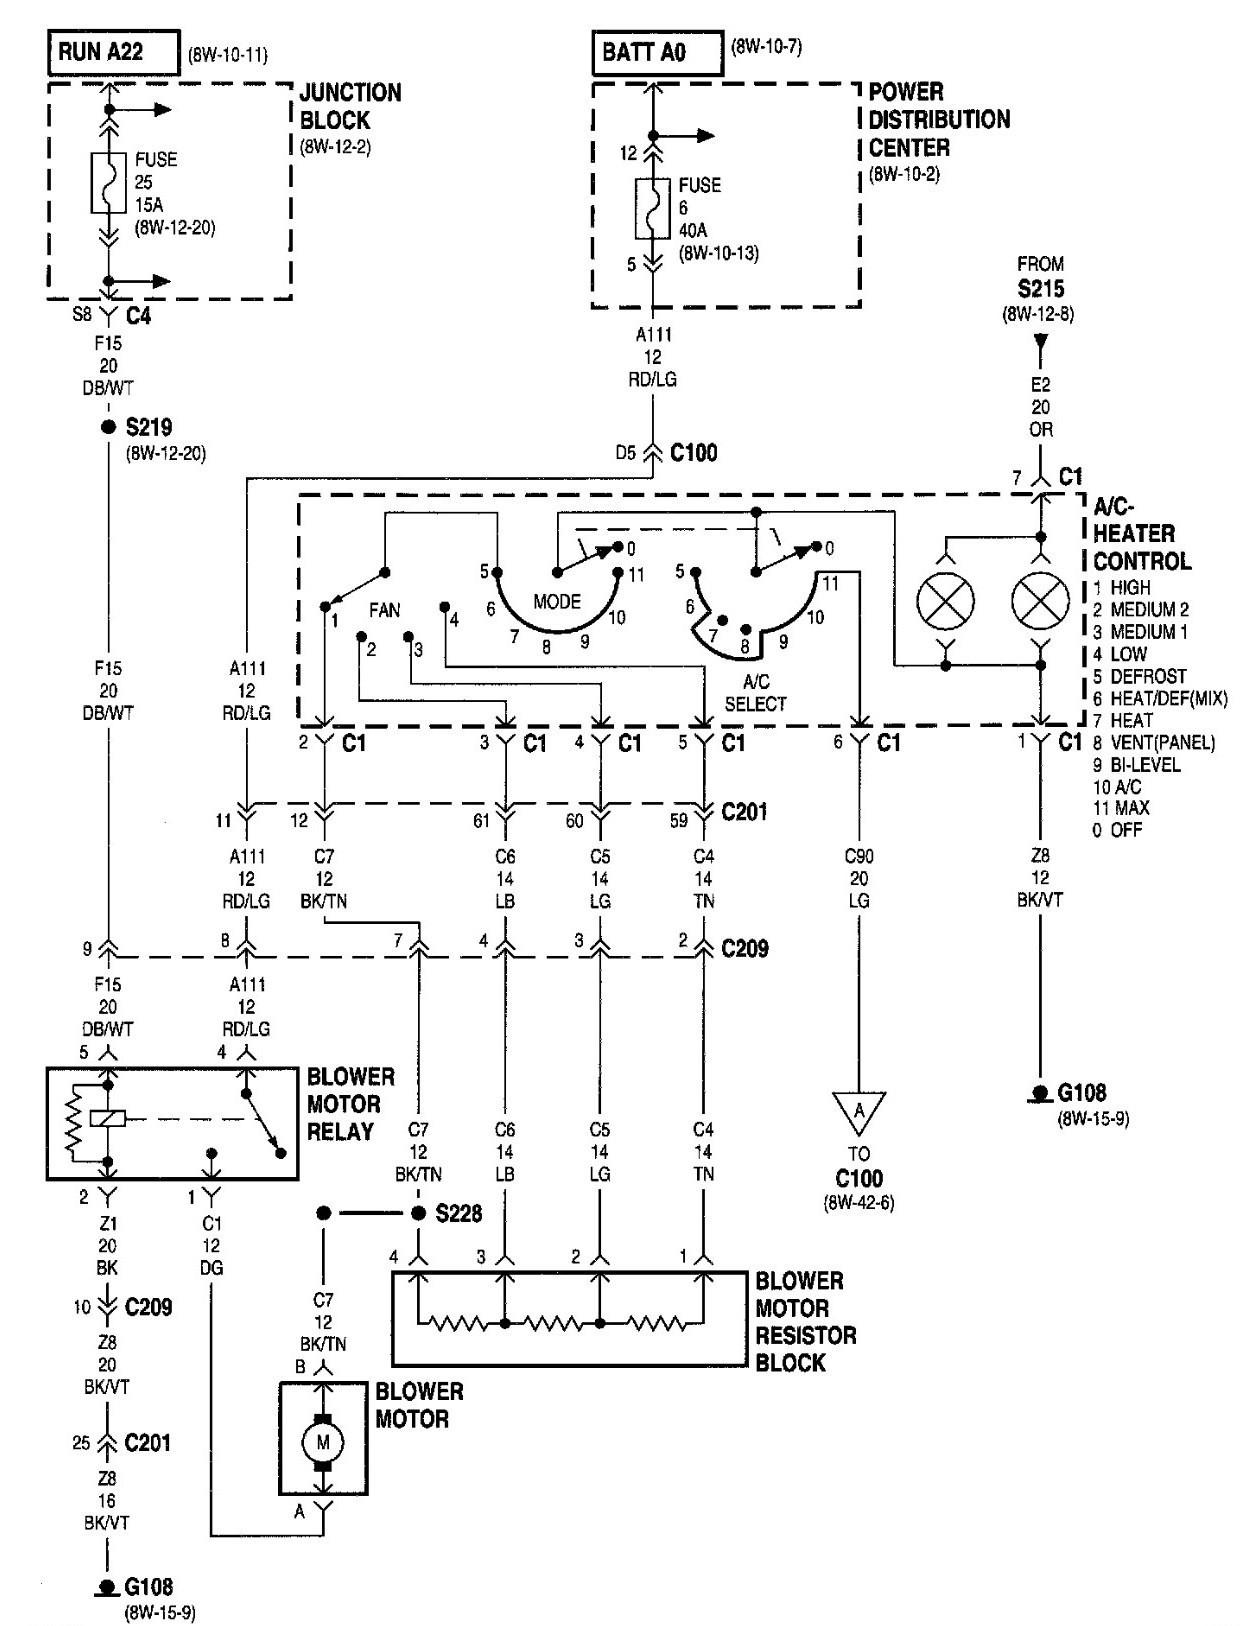 wiring diagram 2003 wrangler vm 0993  chrysler radio wire diagram free diagram  vm 0993  chrysler radio wire diagram